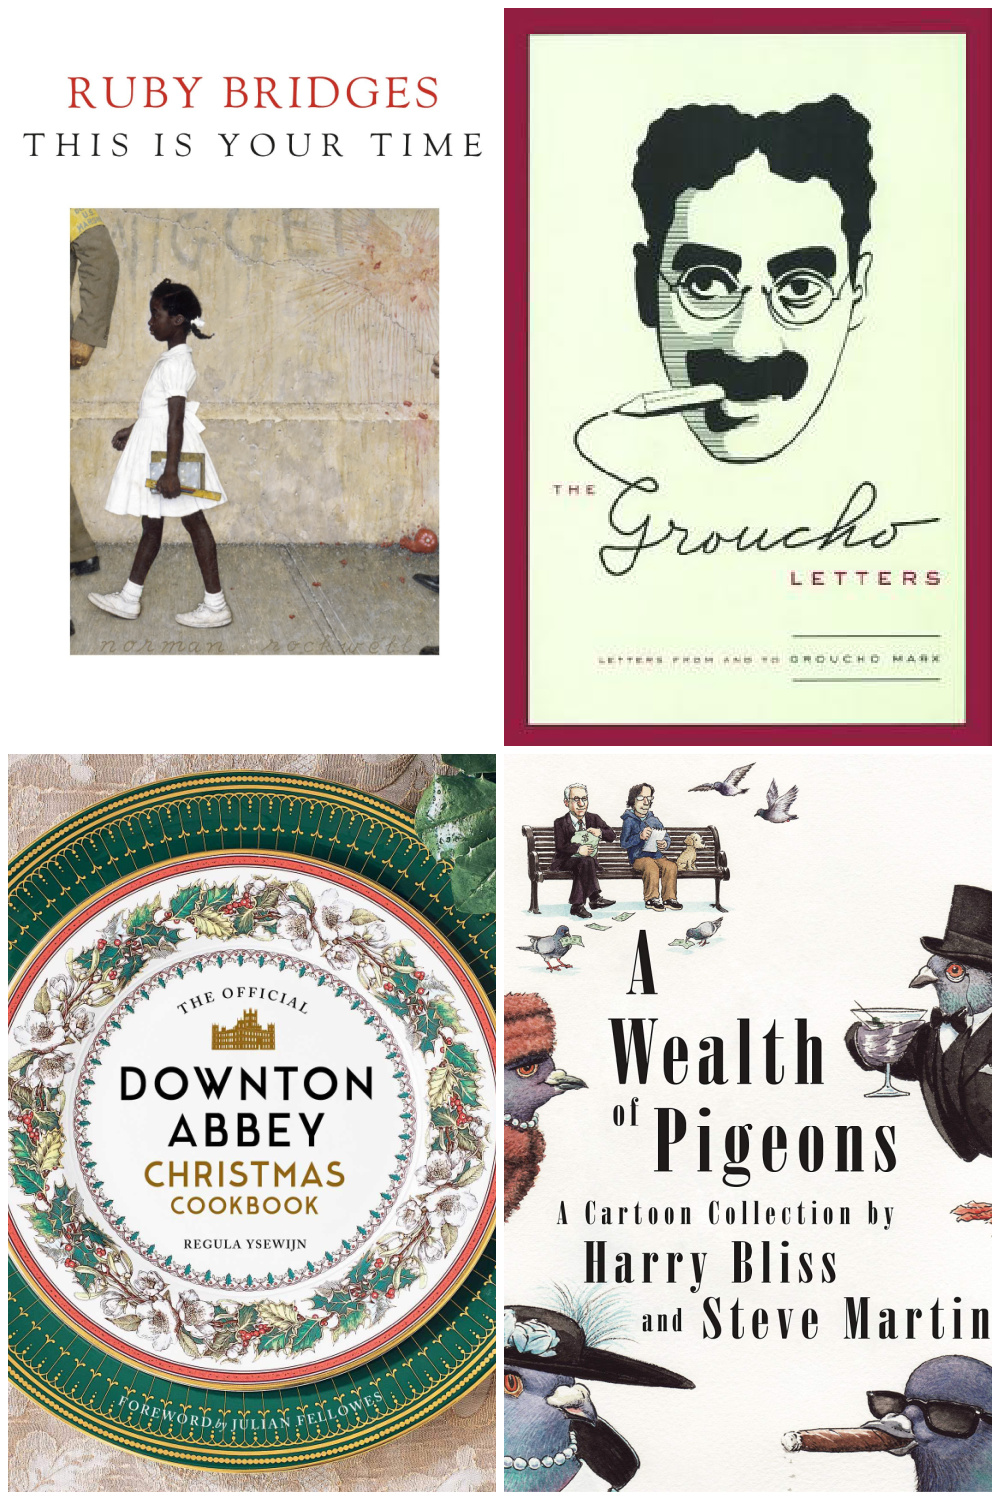 10 best gifts for grandparents from small businesses: New release books from Indiebound